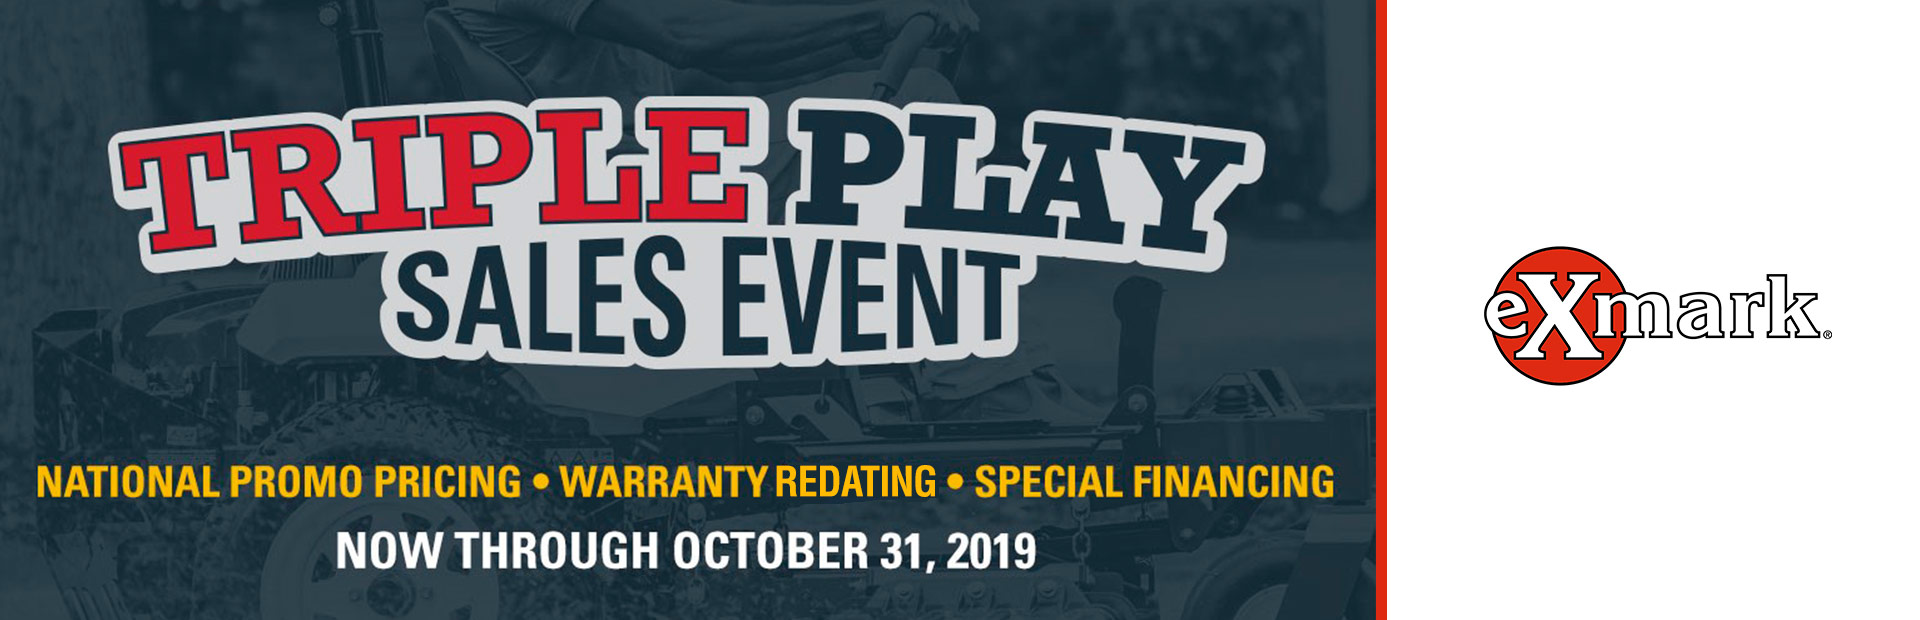 Exmark: Triple Play Sales Event Warranty Redating